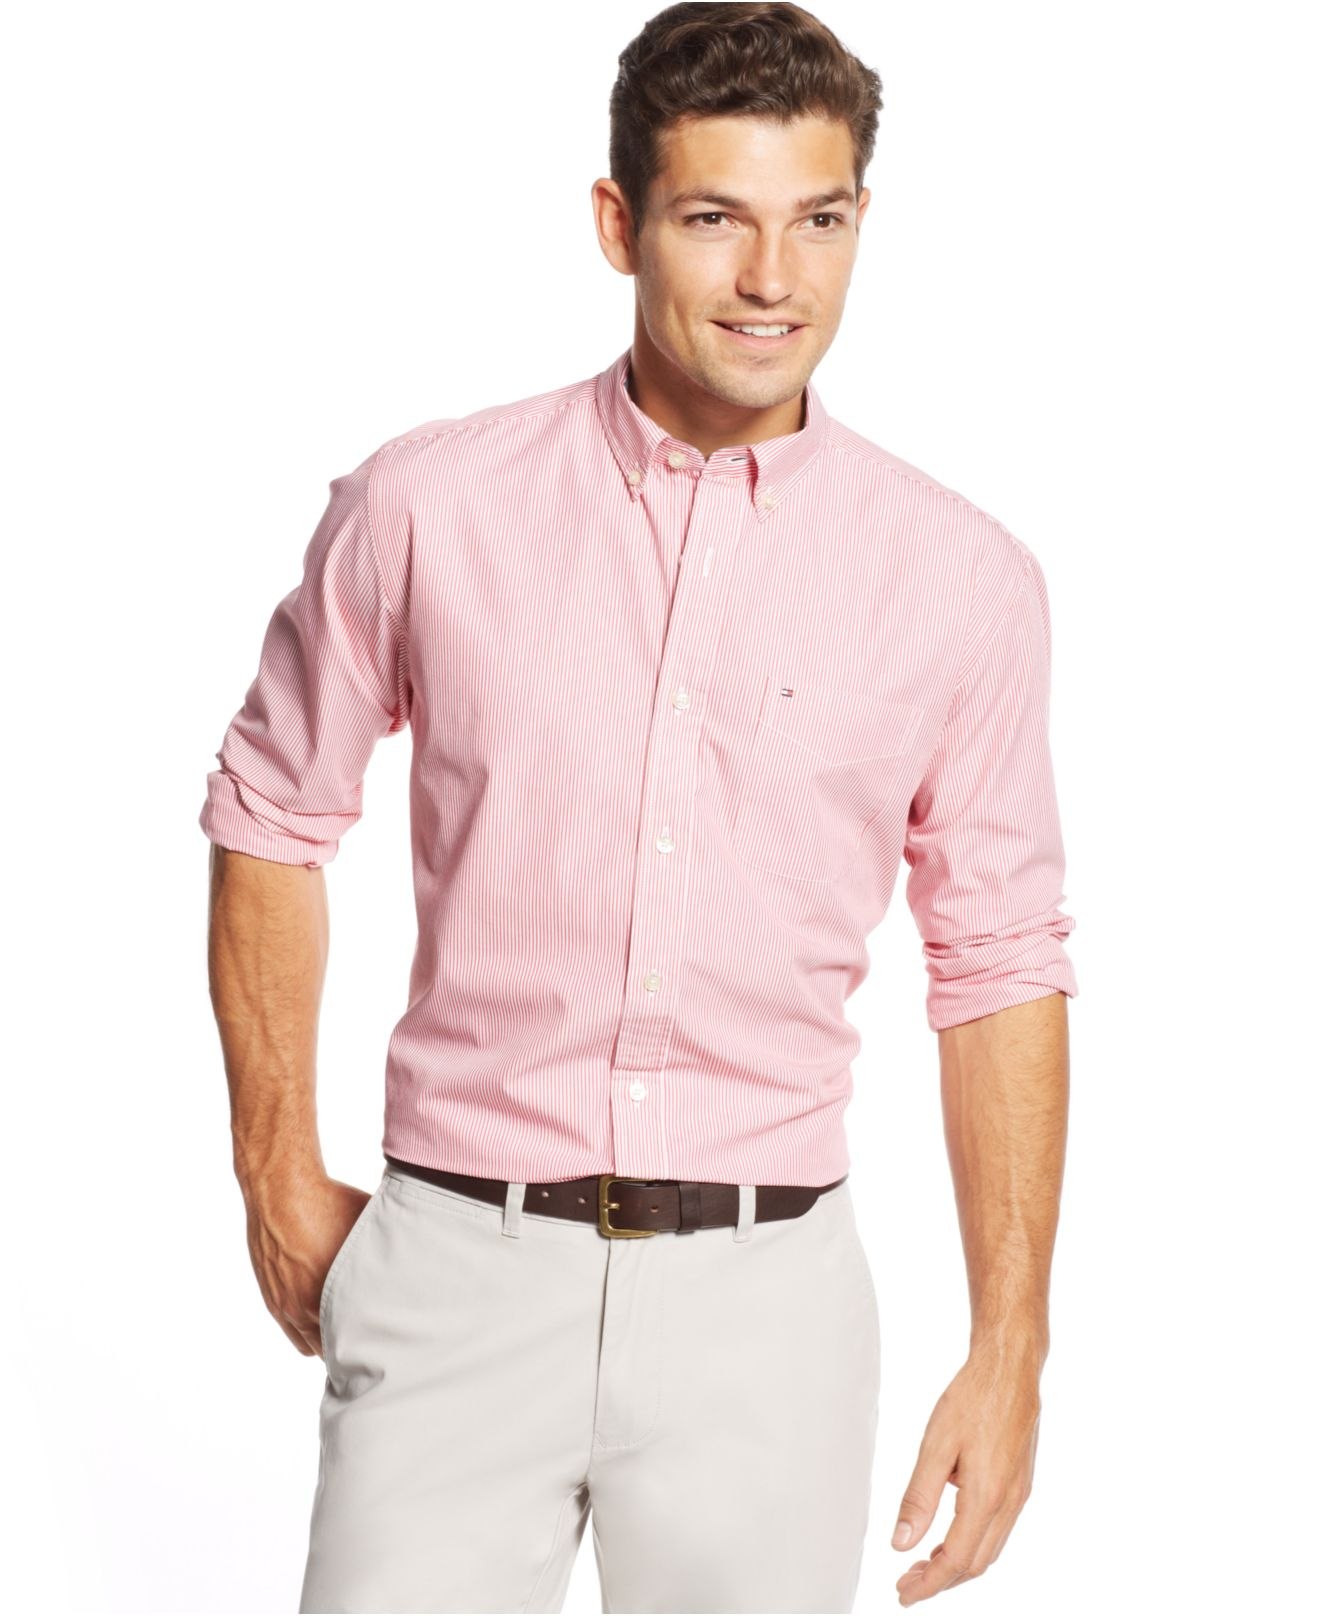 56c550e0 Tommy Hilfiger Fitzgerald Striped Classic-Fit Shirt in Pink for Men ...